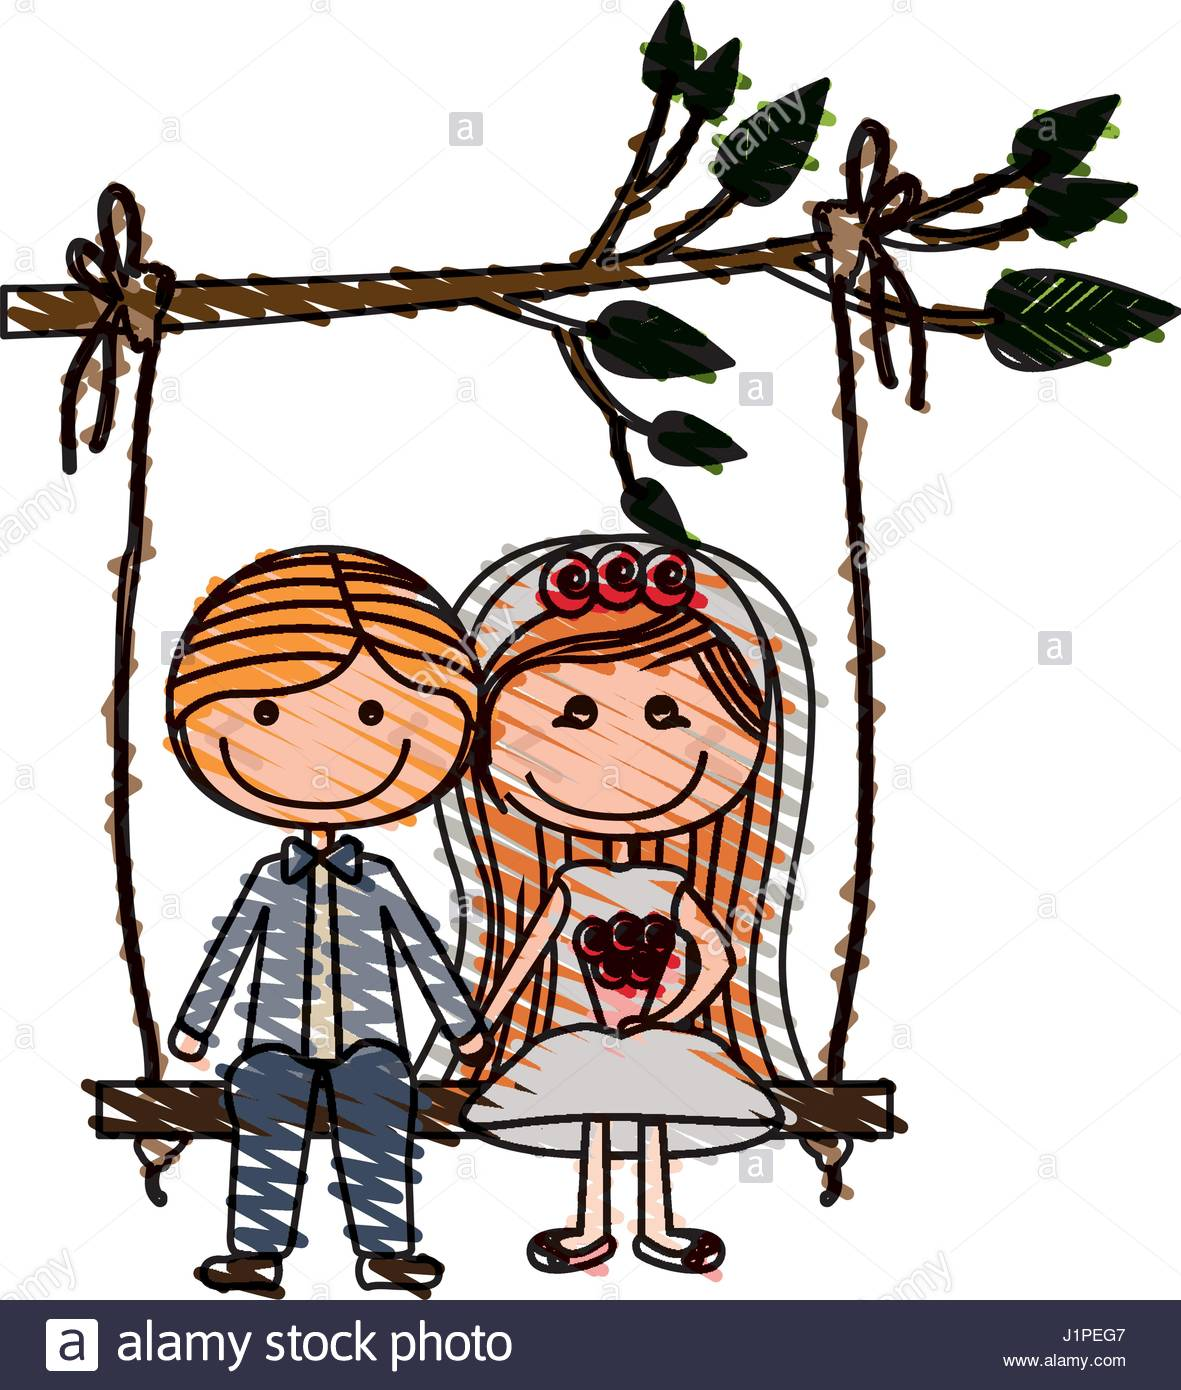 1181x1390 Color Pencil Drawing Of Caricature Married Couple In Swing Hanging